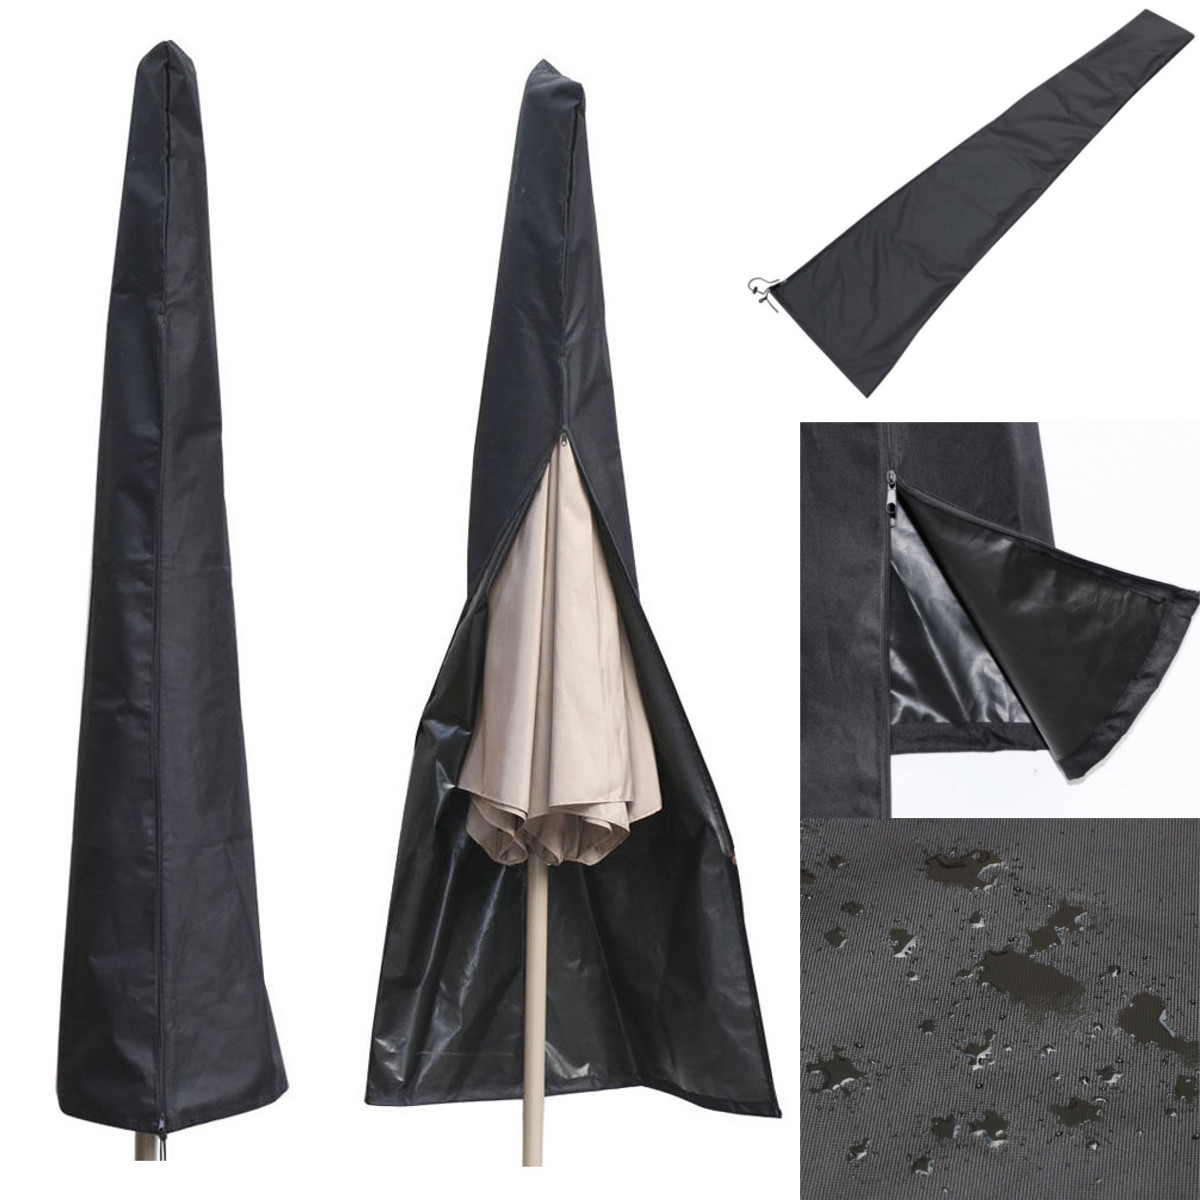 190X57X26CM Outdoor Waterproof Patio Umbrella Canopy Rain Cover Shade  Protective Sunshade Sun Shelter Shed Zipper Bag Awing Bags In Sun Shelter  From Sports ...